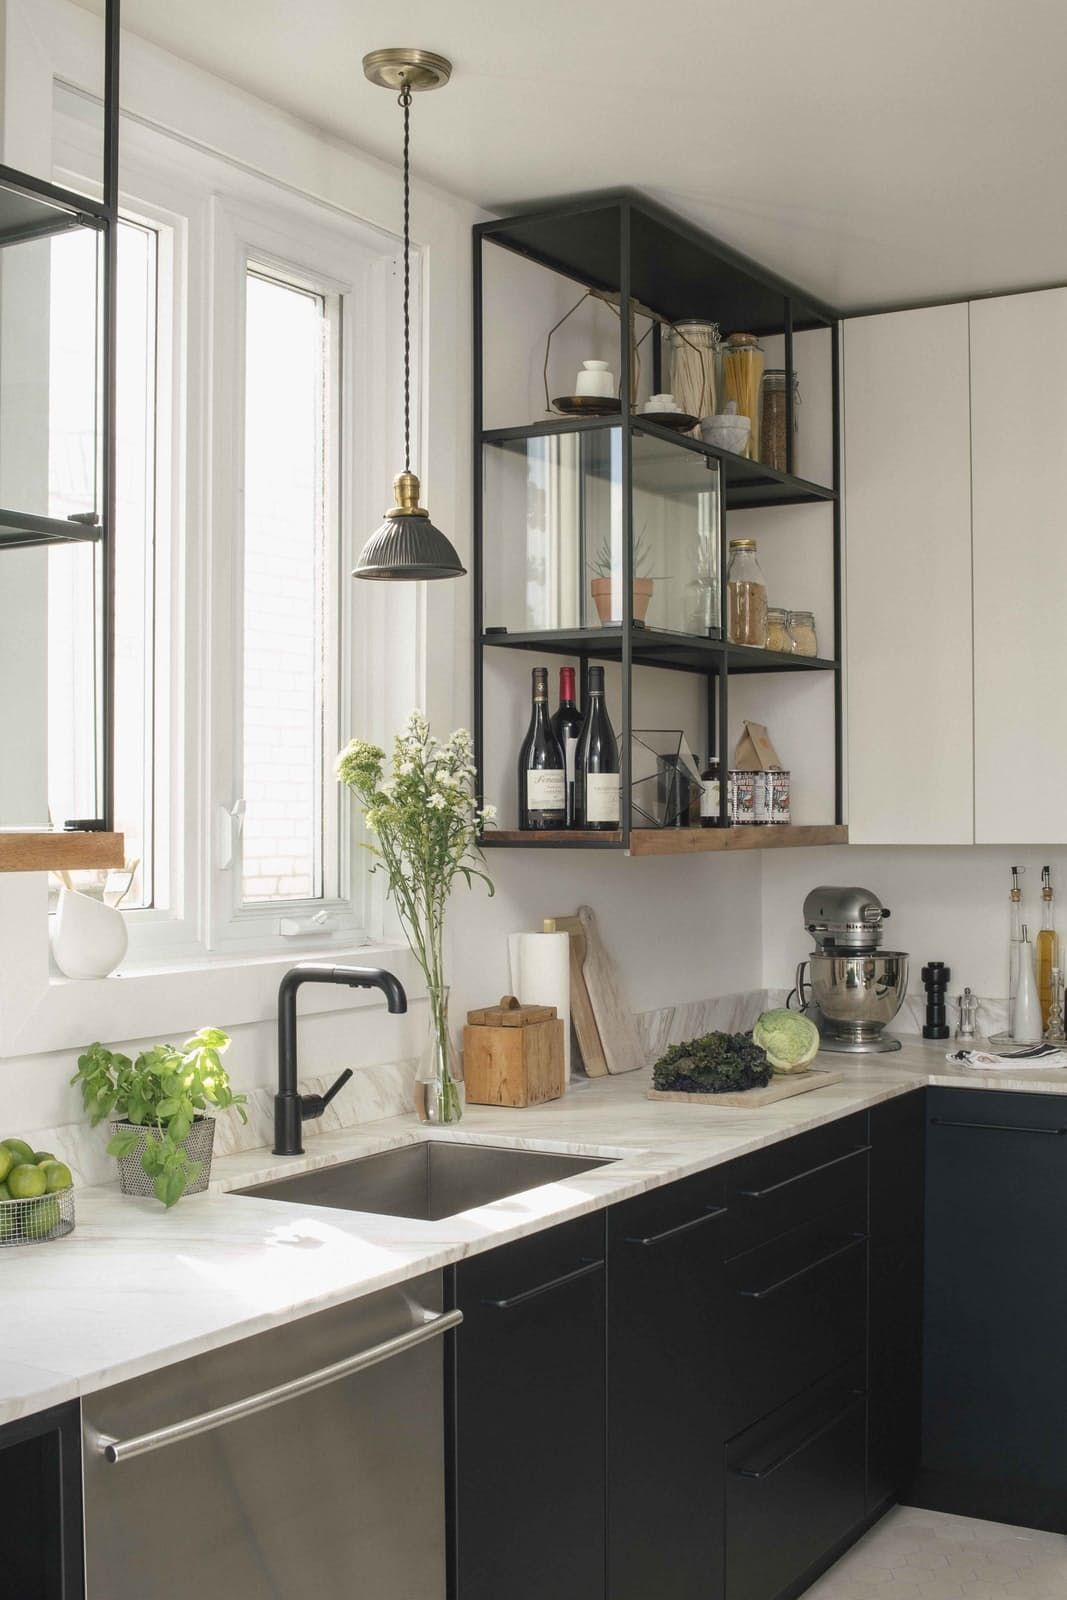 Industrie Küche Ikea Inspiring Kitchens You Won T Believe Are Ikea In 2019 Interior